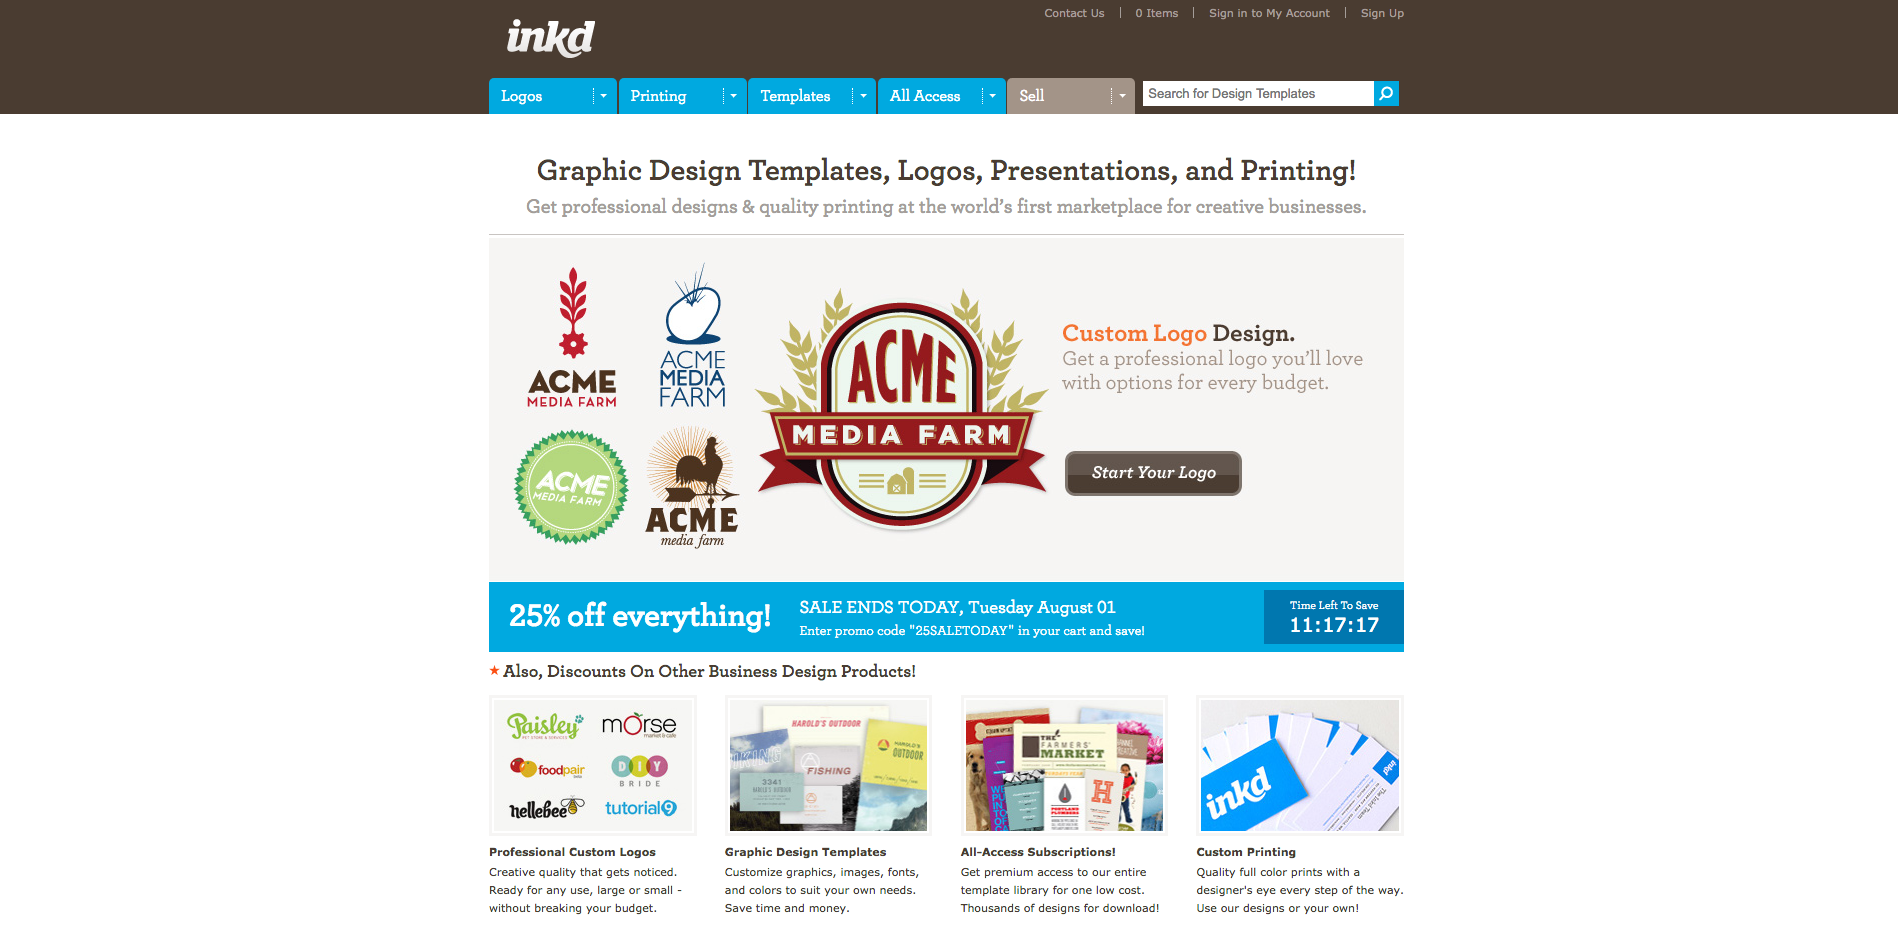 inkd buy and sell custom graphic design templates